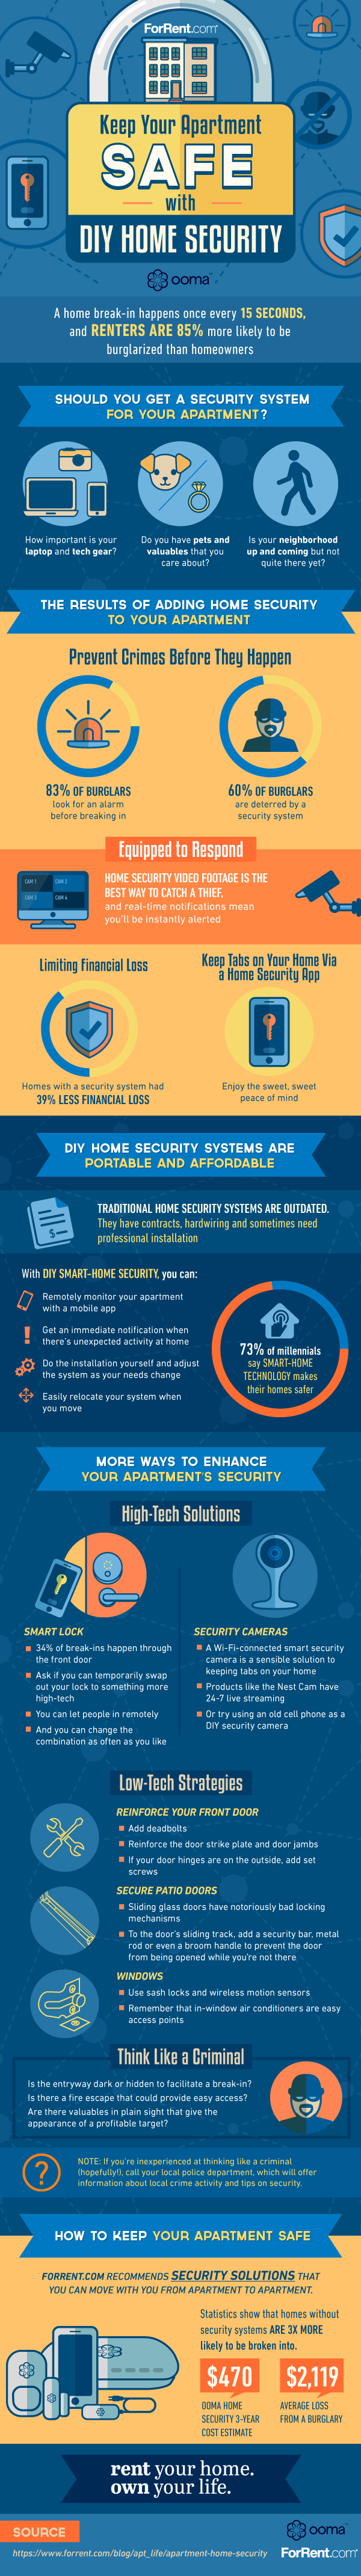 DIY Ways to Keep Your Home Safe - Infographic